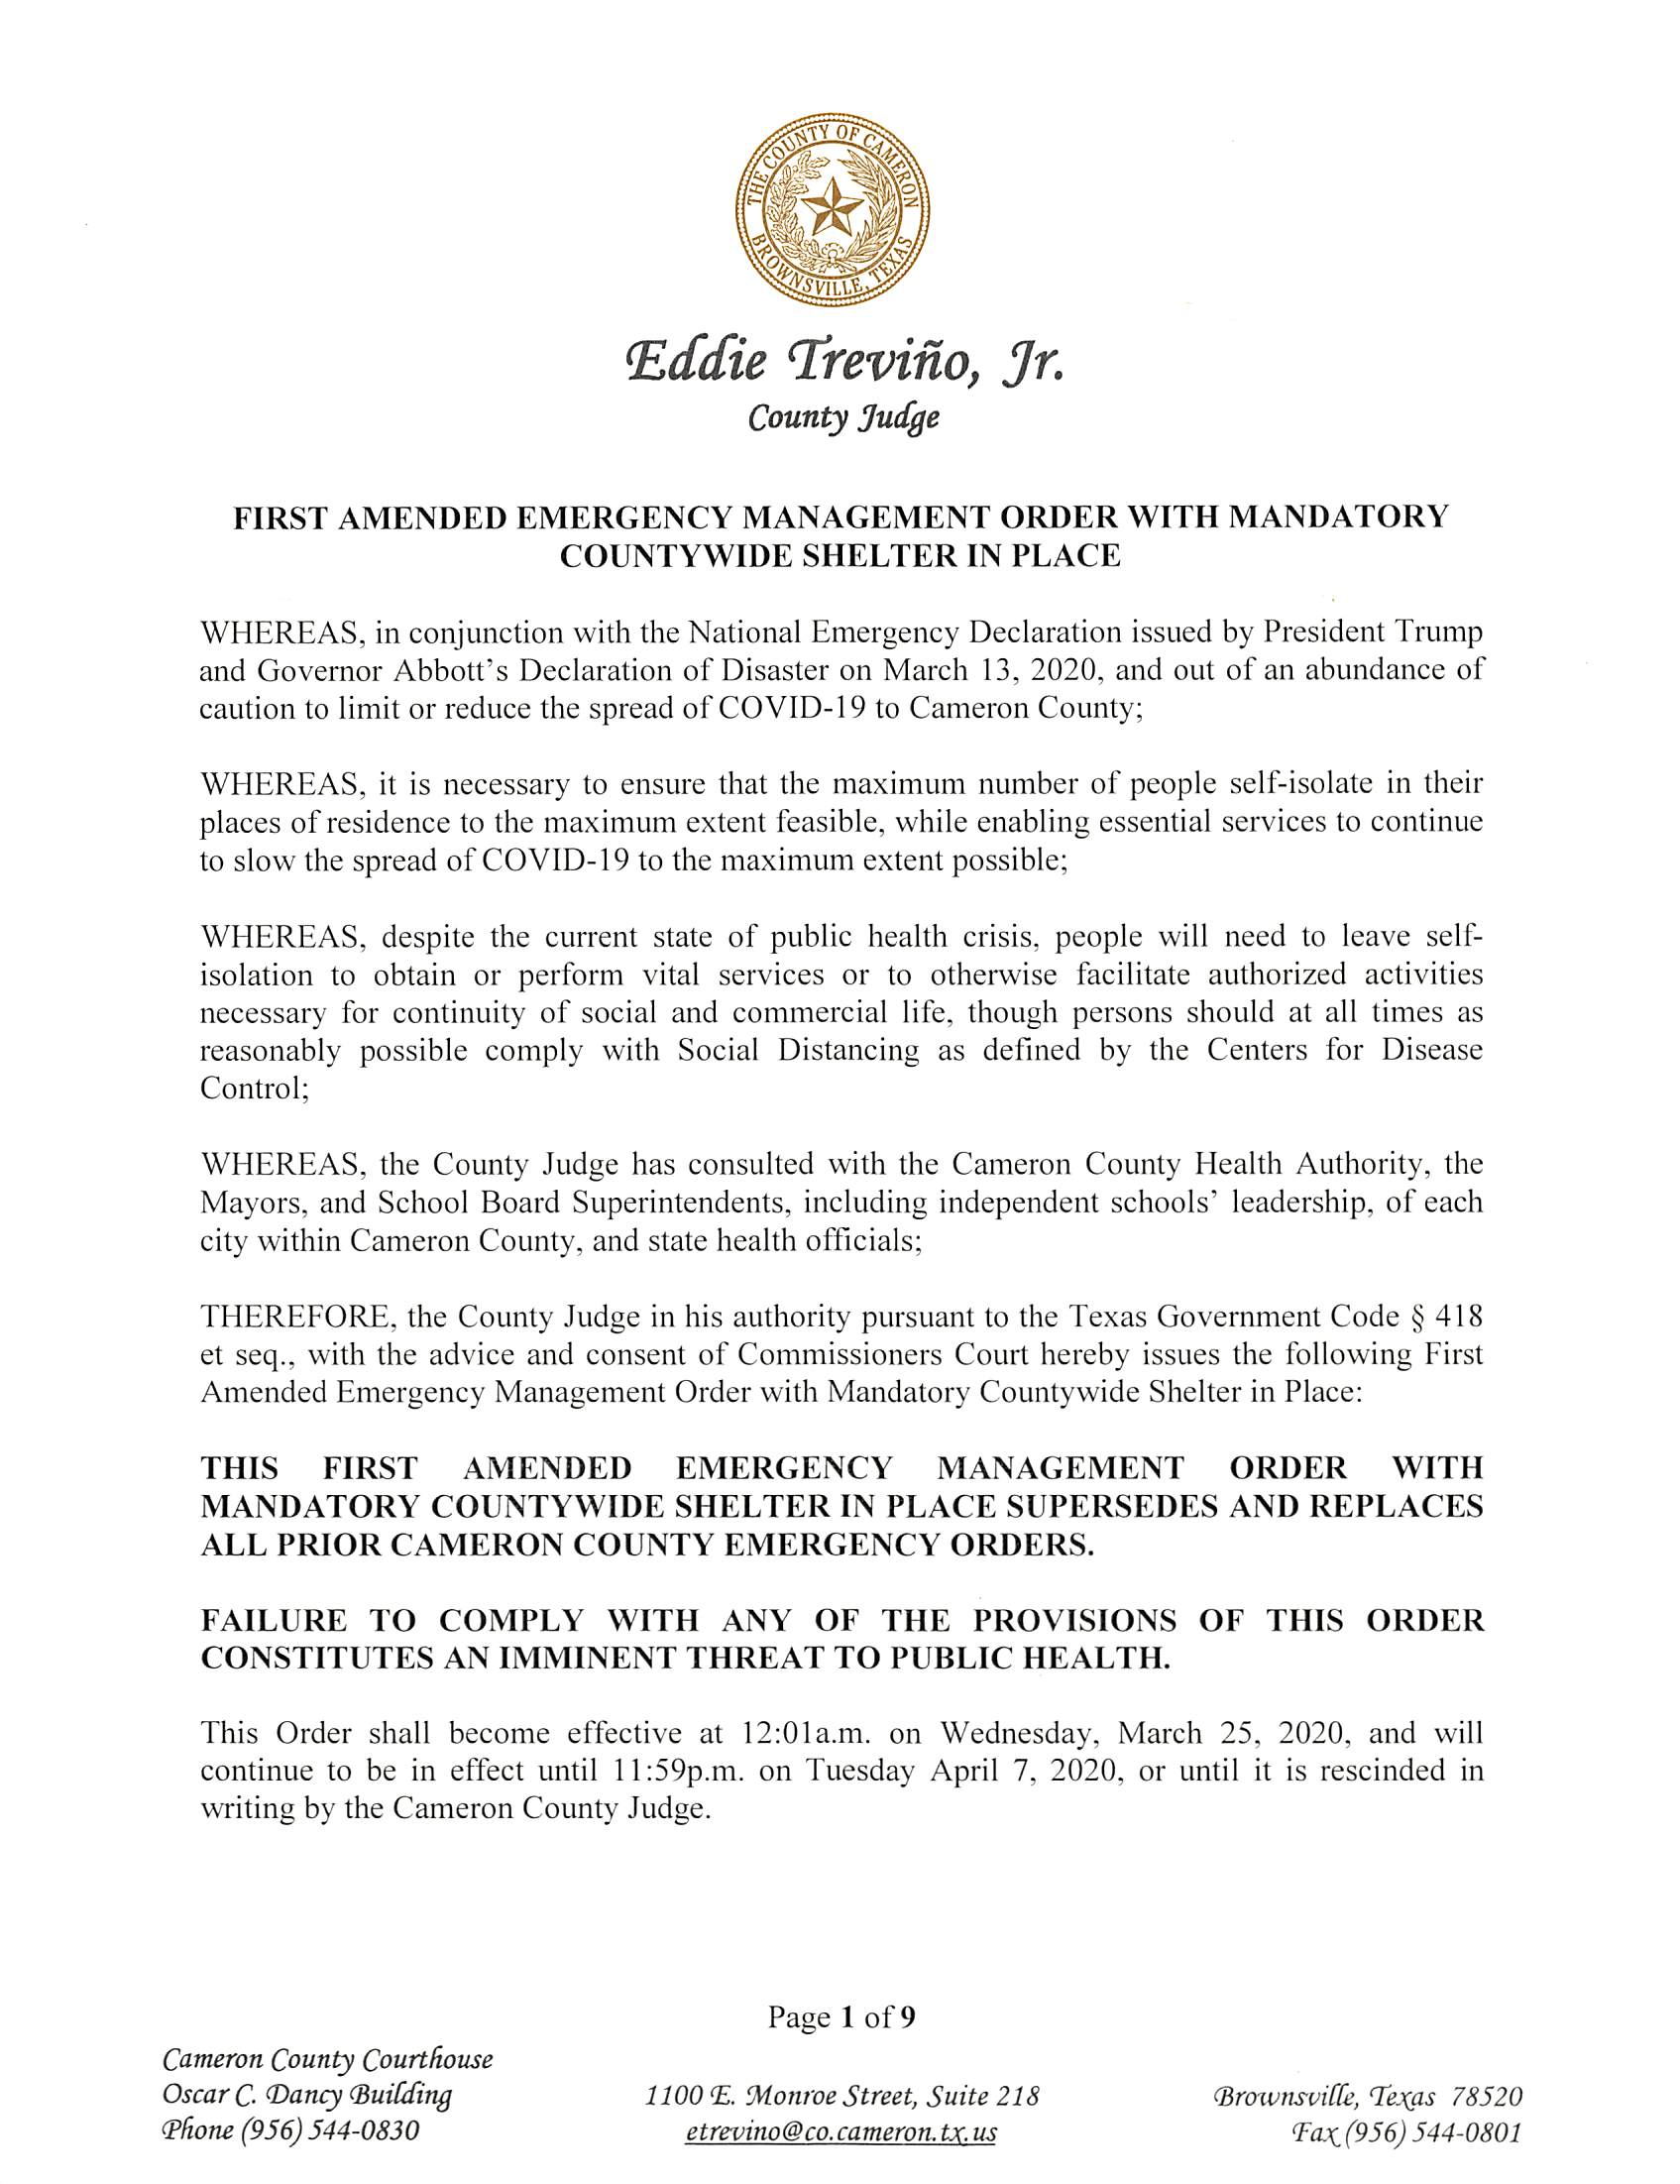 2020 03 26 FIRST AMENDED EMERGENCY MANAGEMENT ORDER WITH MANDATORY COUNTYWIDE SHELTER IN PLACE Page 1